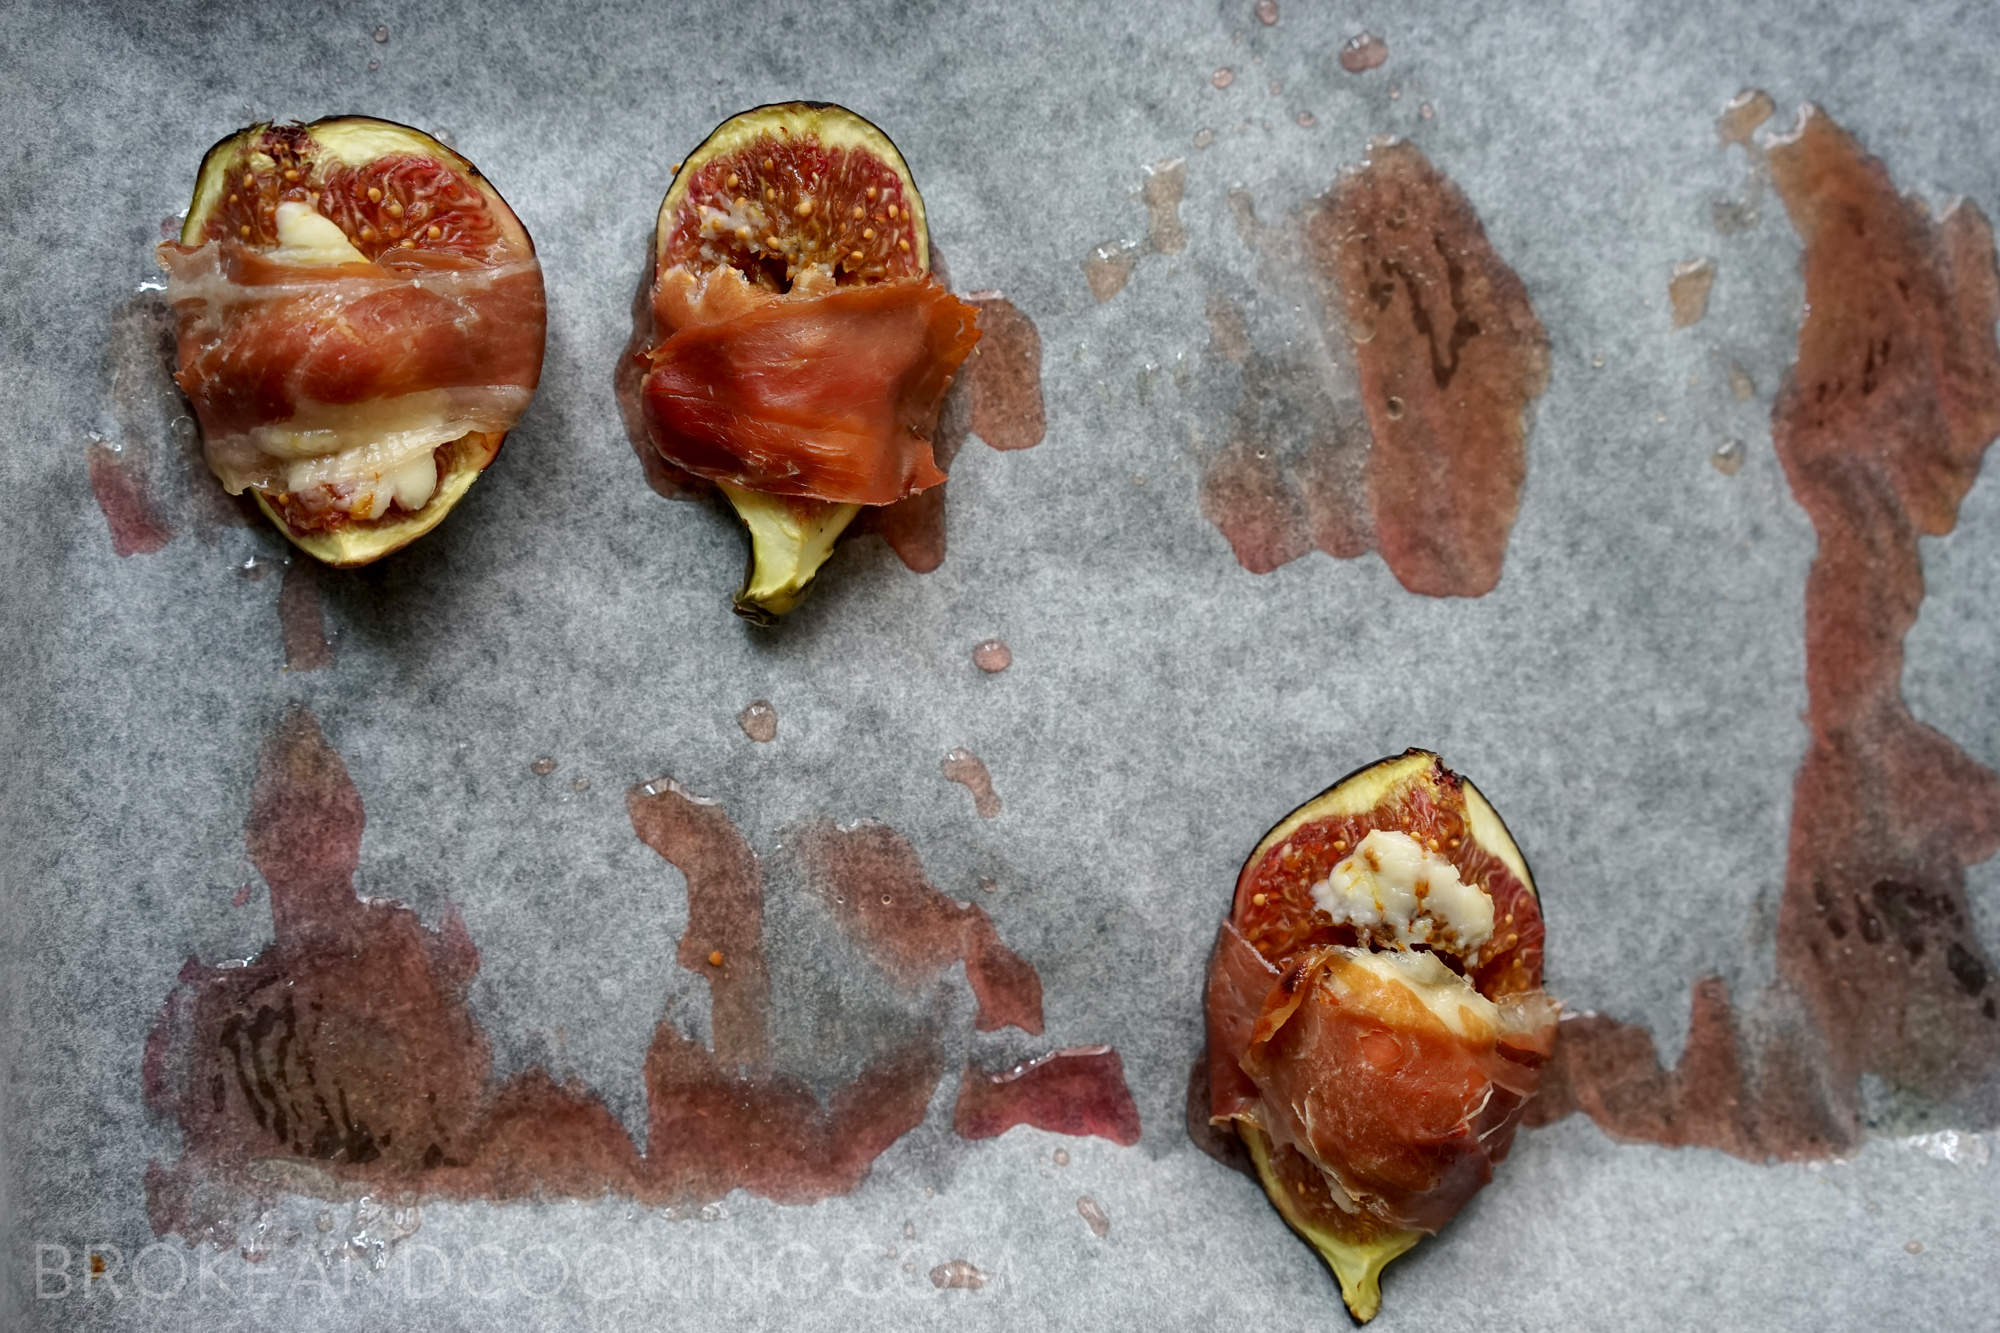 Prosciutto Wrapped Figs Recipe by Broke and Cooking - www.brokeandcooking.com